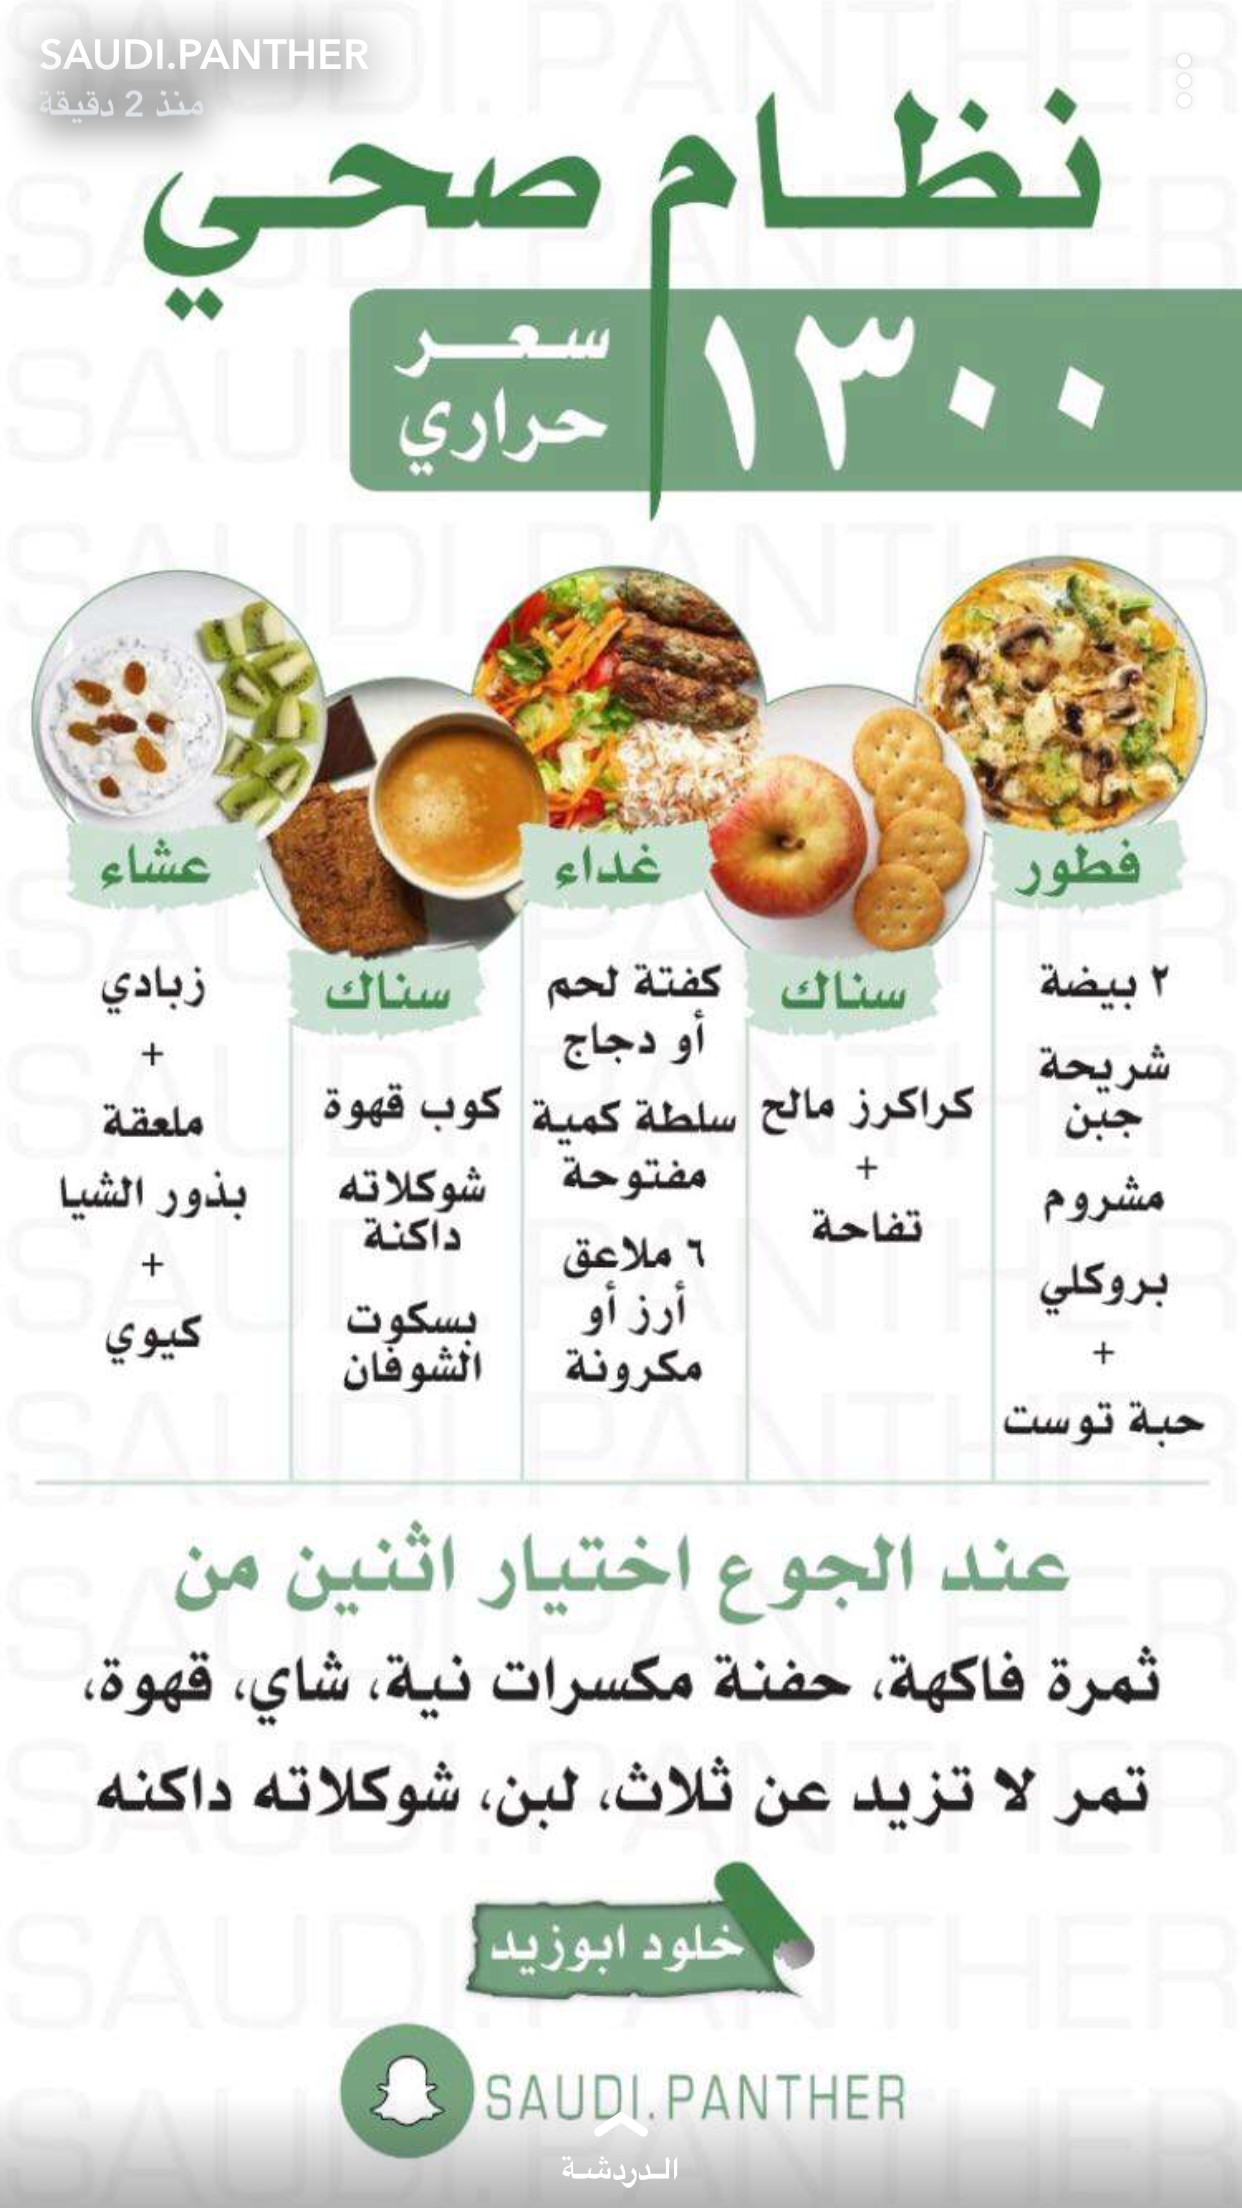 Dietas Health Fitness Food Health Facts Food Fitness Healthy Lifestyle